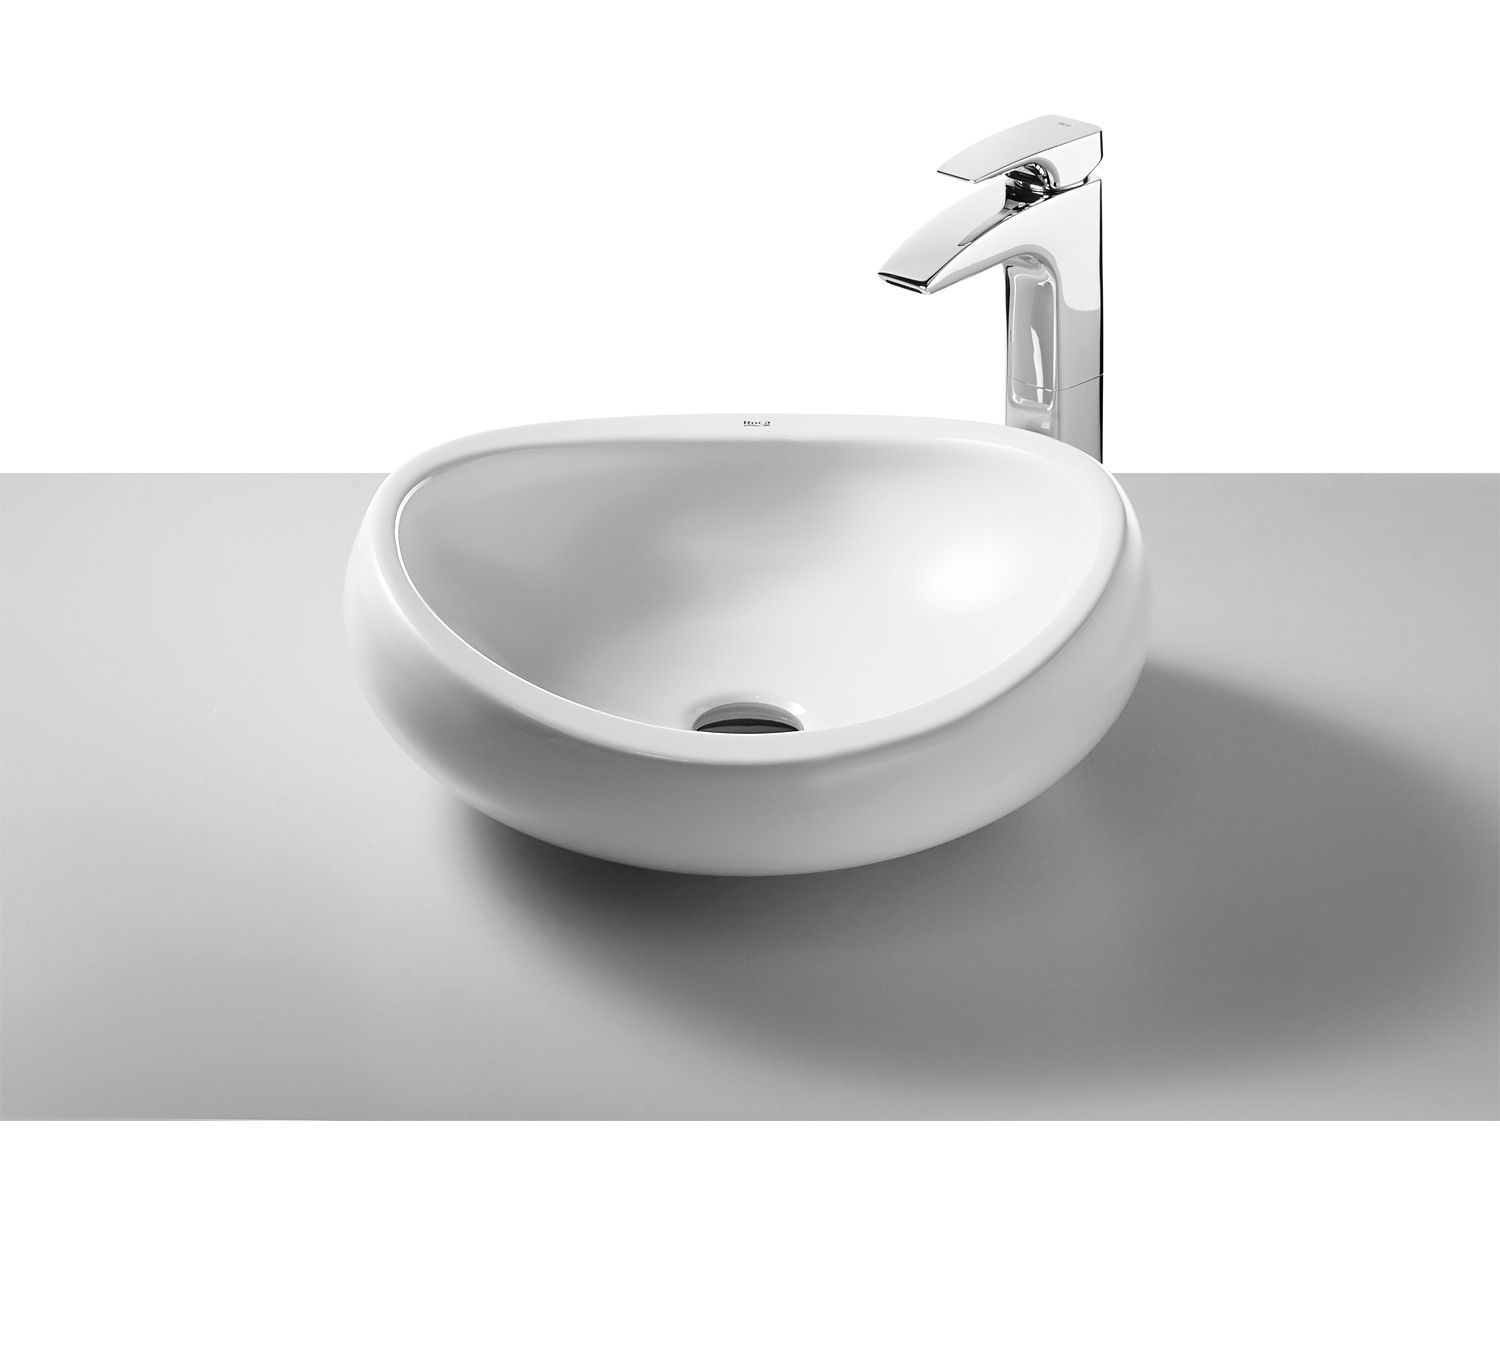 Roca Urbi 1 On Countertop 450mm Basin With No Taphole Bathroom  # Muebles Heima Roca